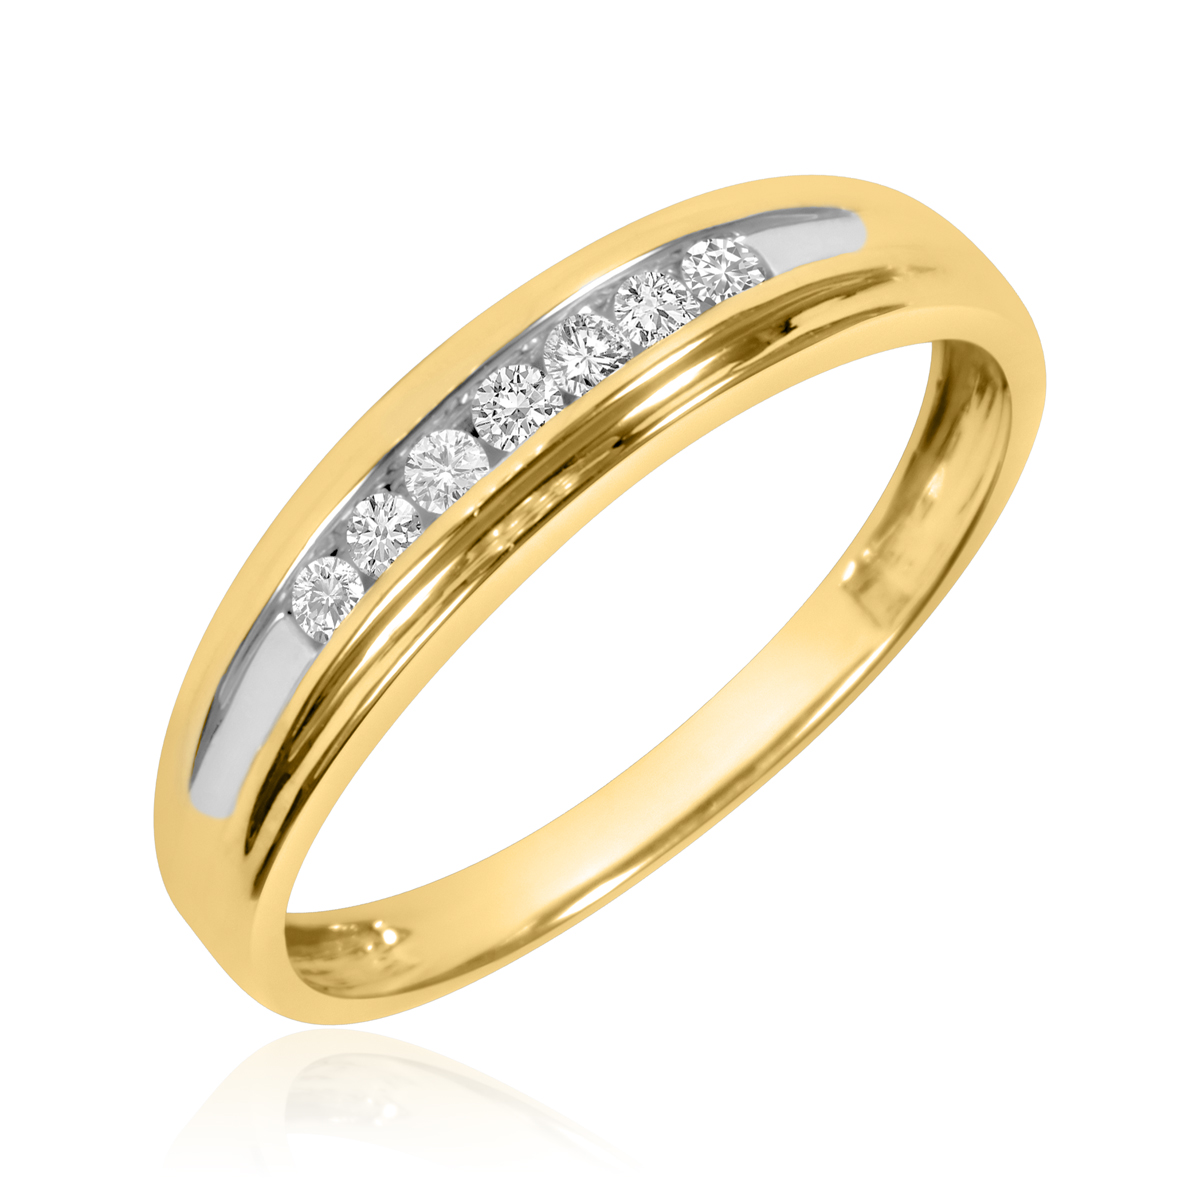 1/8 CT. T.W. Round Cut Diamond Ladies Wedding Band 10K Yellow Gold- Size 8